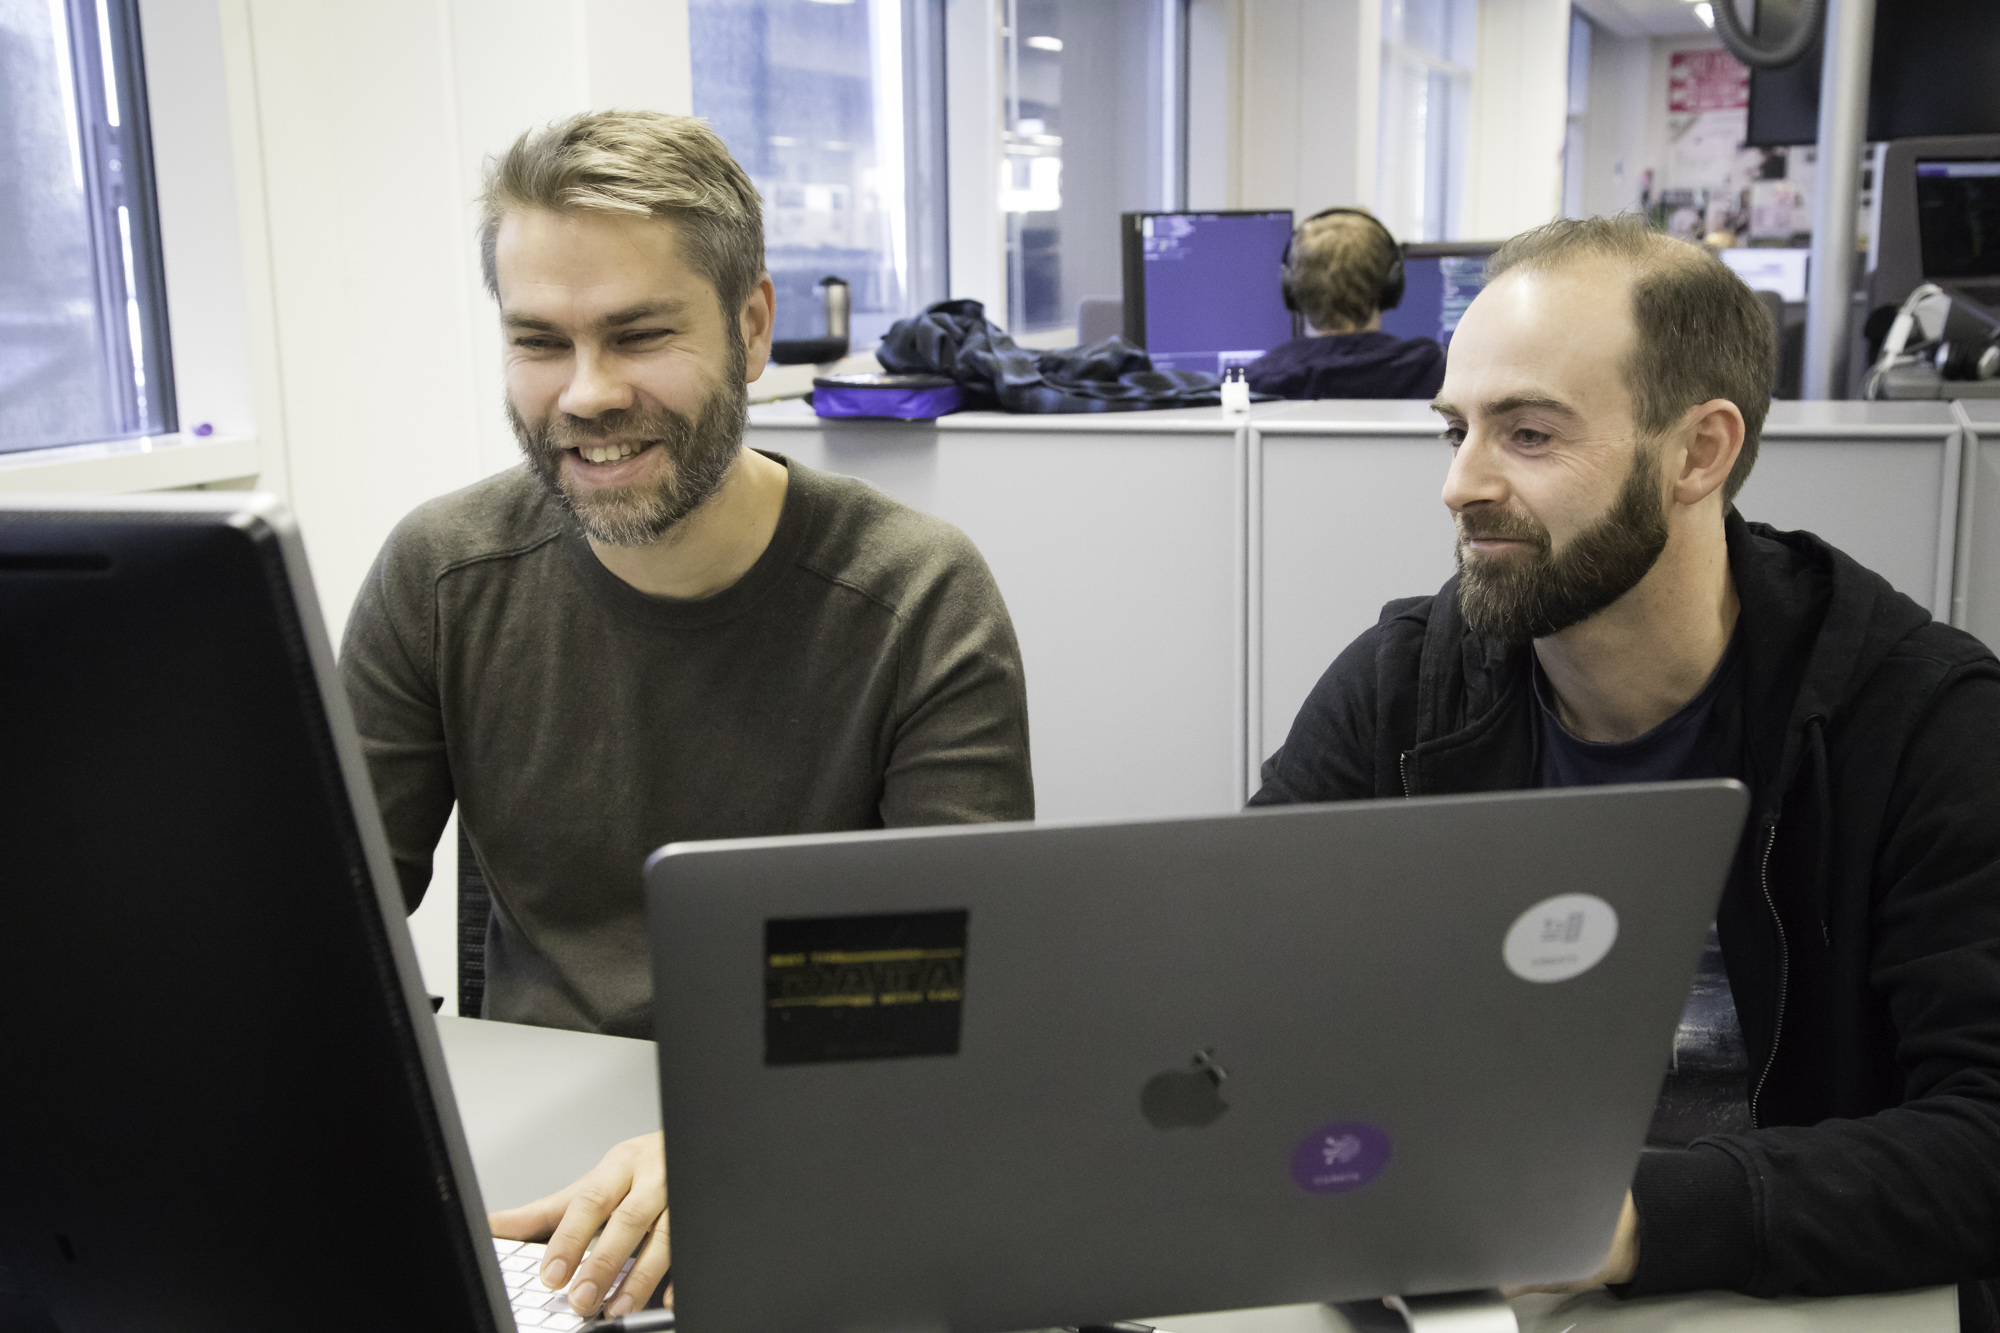 The Oslo part of the machine learning team: Fredrik Jørgensen and Vegard Sandvold